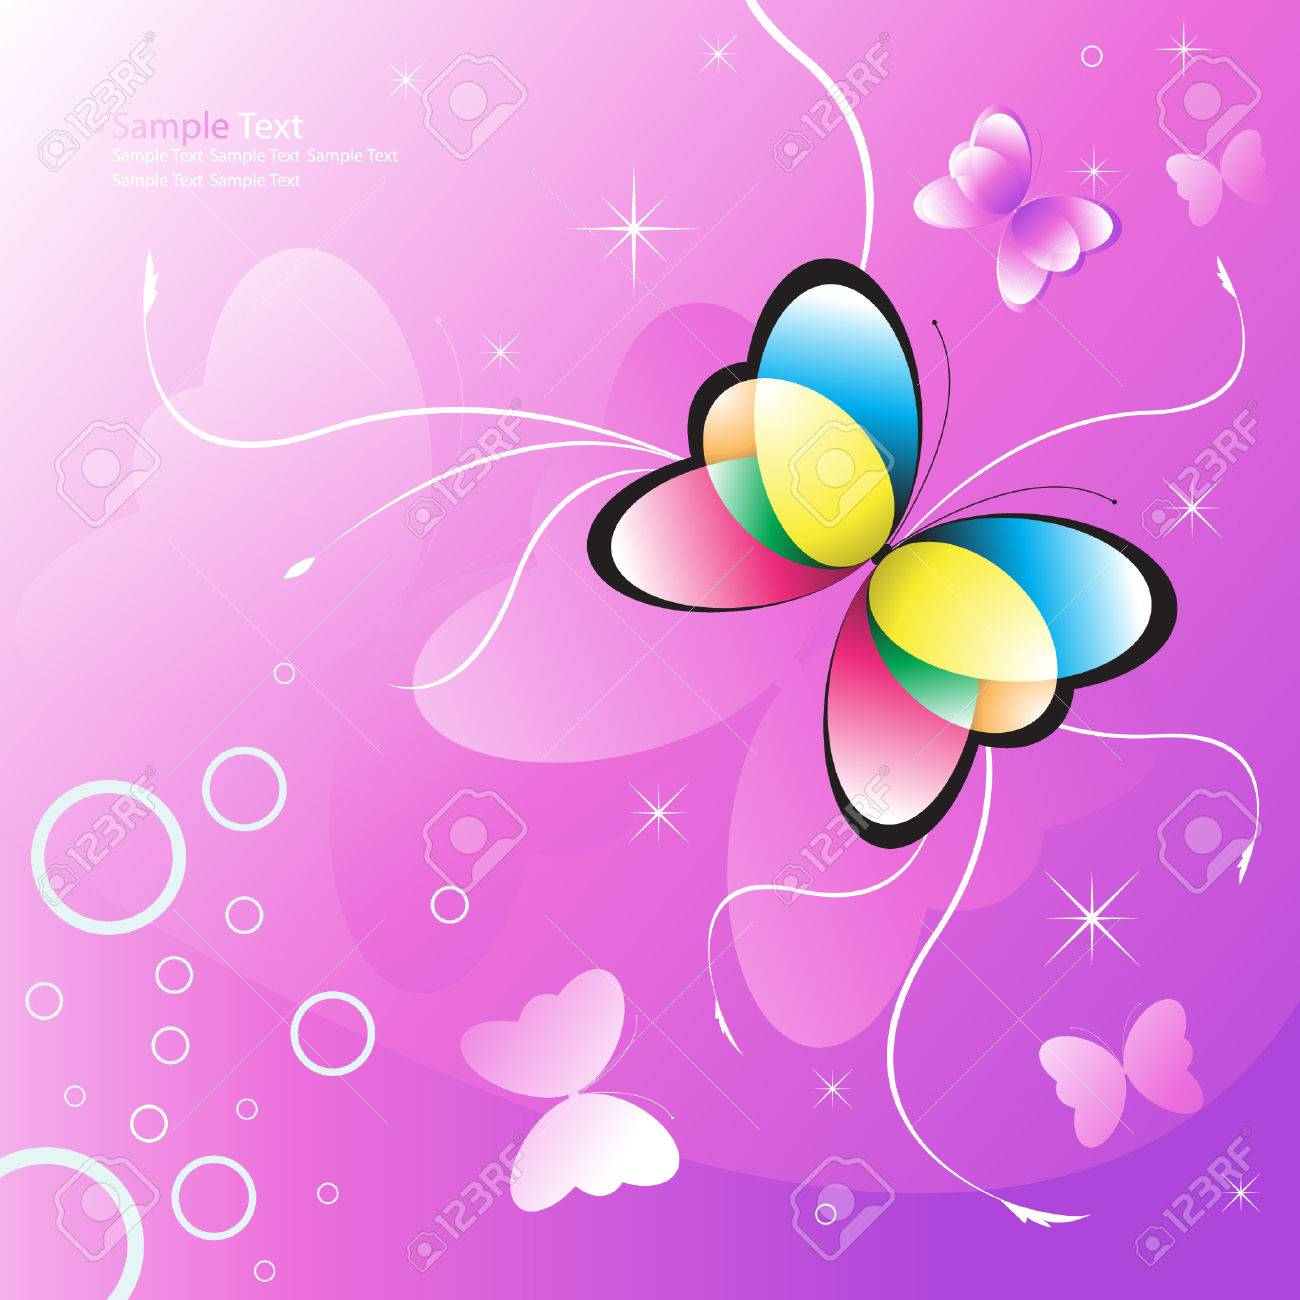 butterfly vector illustration on a pink background Stock Vector - 4896386